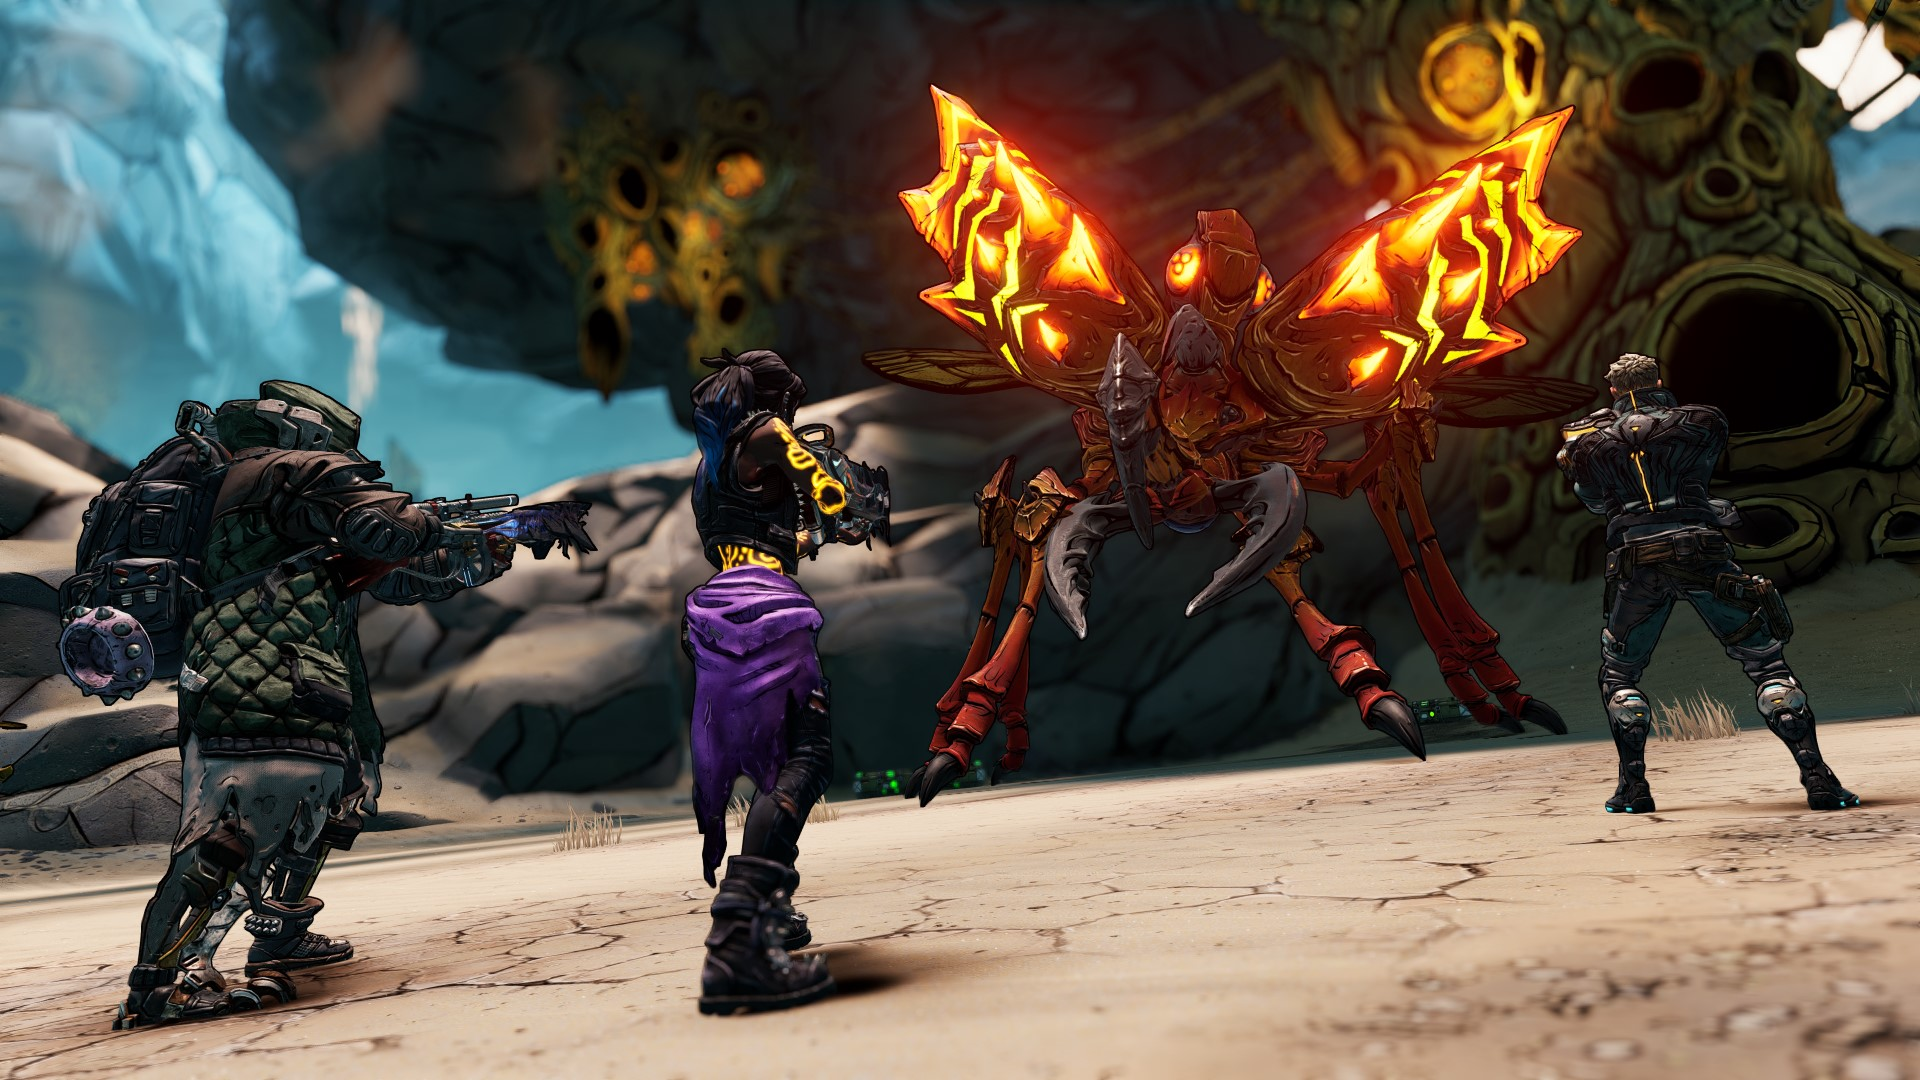 Borderlands 3's Director's Cut arrives next month with a new raid boss